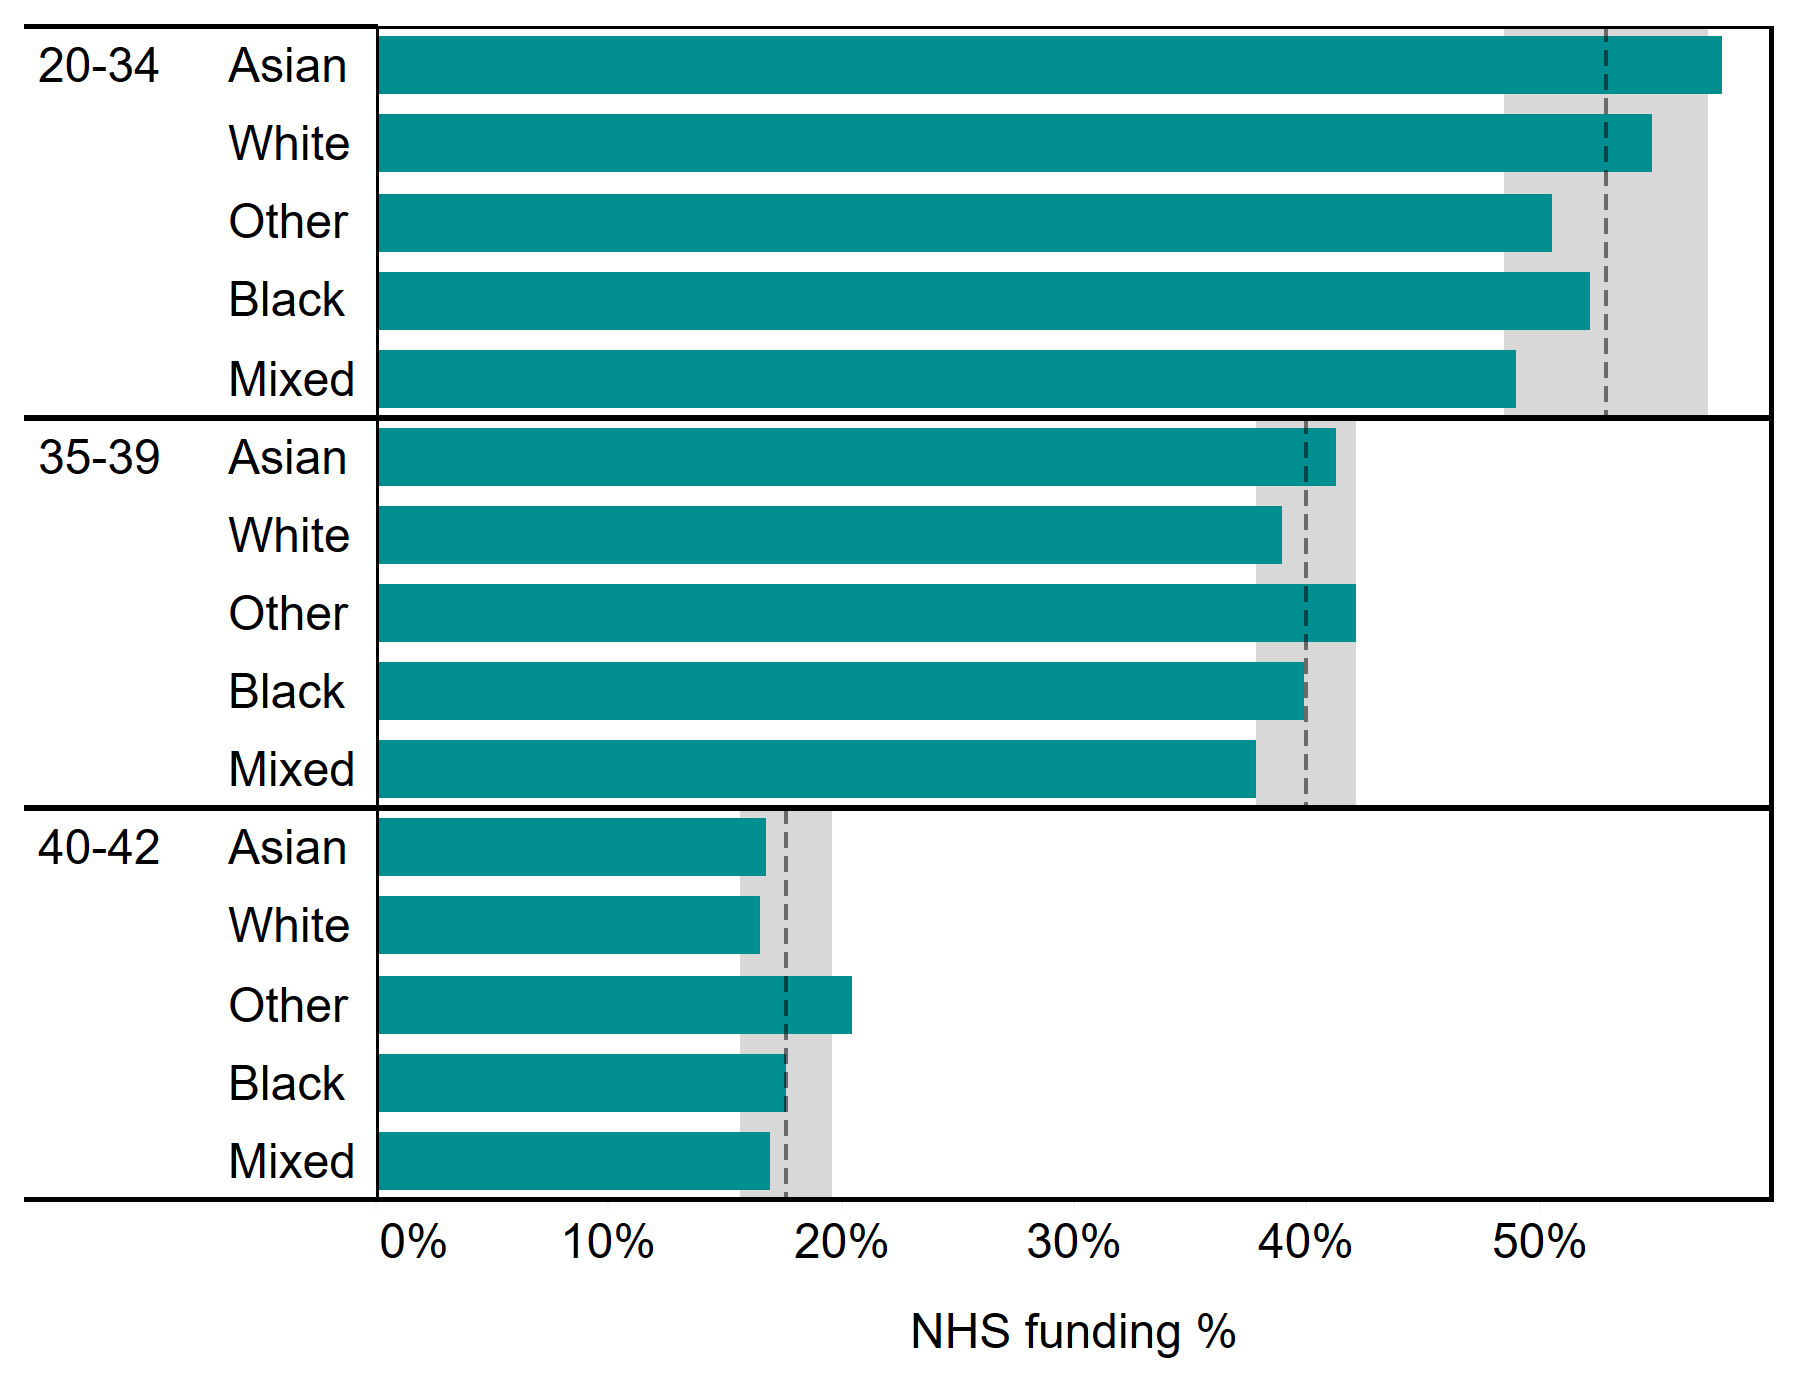 Proportion of IVF cycles funded by NHS, patient age and ethnicity, UK, 2014-2018. The horizontal bar graph shows the percentage of NHS-funded cycles by ethnic group. The graph is further broken down into patient age groups; 20-34, 35-39 and 40-42. For each age group, the average proportion of NHS-funded cycles are shown with a 95% confidence interval. The proportion of NHS-funded cycles decreased with each age bracket. Approximately 50% of IVF cycles were NHS-funded for the 20-34 age group, whereas only 20% were NHS-funded for the 40-42 age group. In the 20-34 age group, Asian and White patients had more NHS-funded cycles than average for the age group. For the 35-39 age group, Asian and Other patients had more NHS-funded cycles than average. For the 40-42 age group, Other and Black patients had more NHS-funded cycles than average.